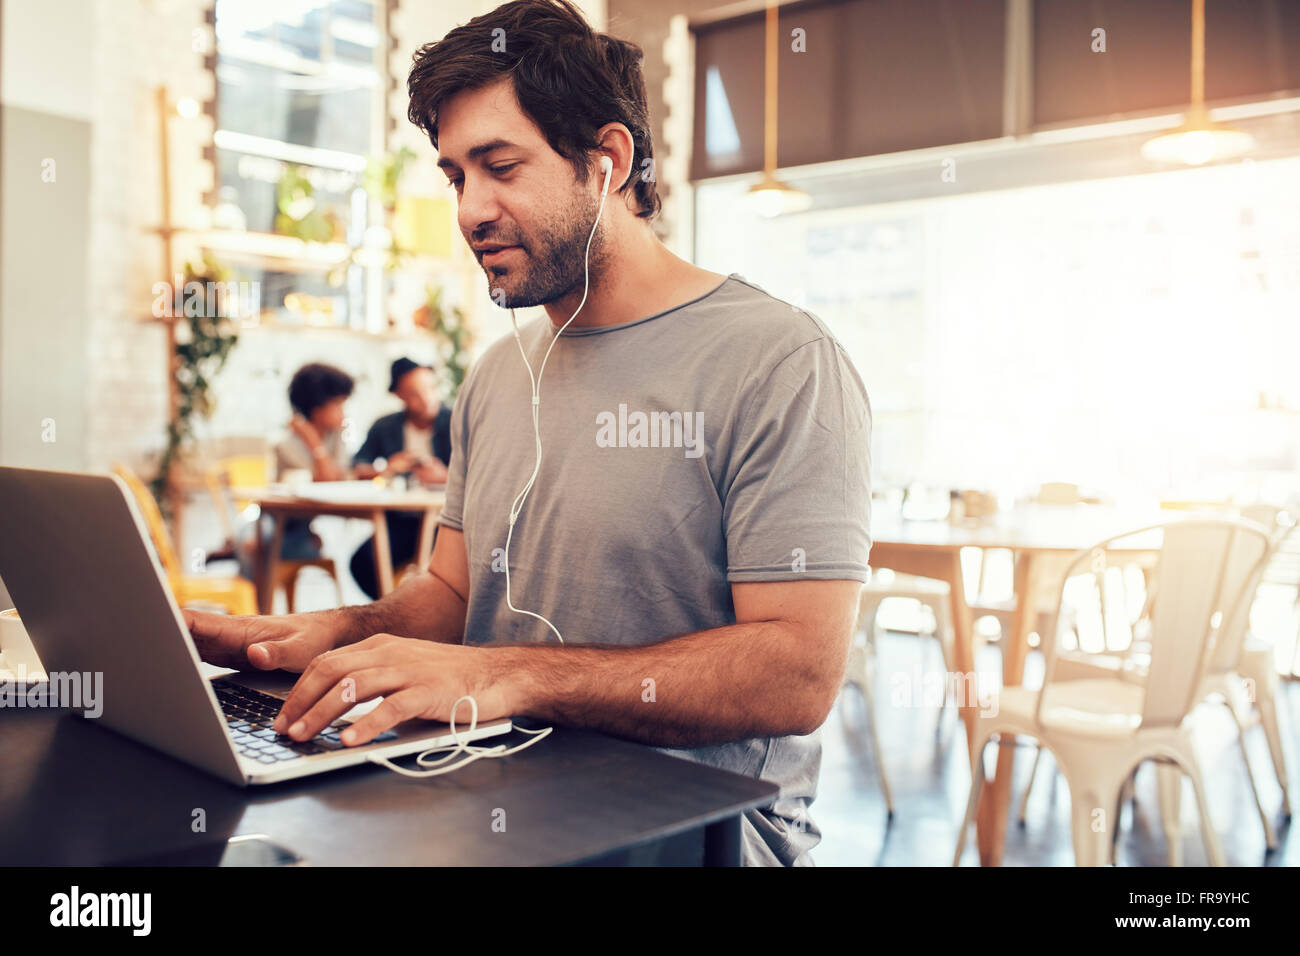 Portrait of handsome young man with earphones working on laptop while sitting at a coffee shop. Young guy at a cafe - Stock Image